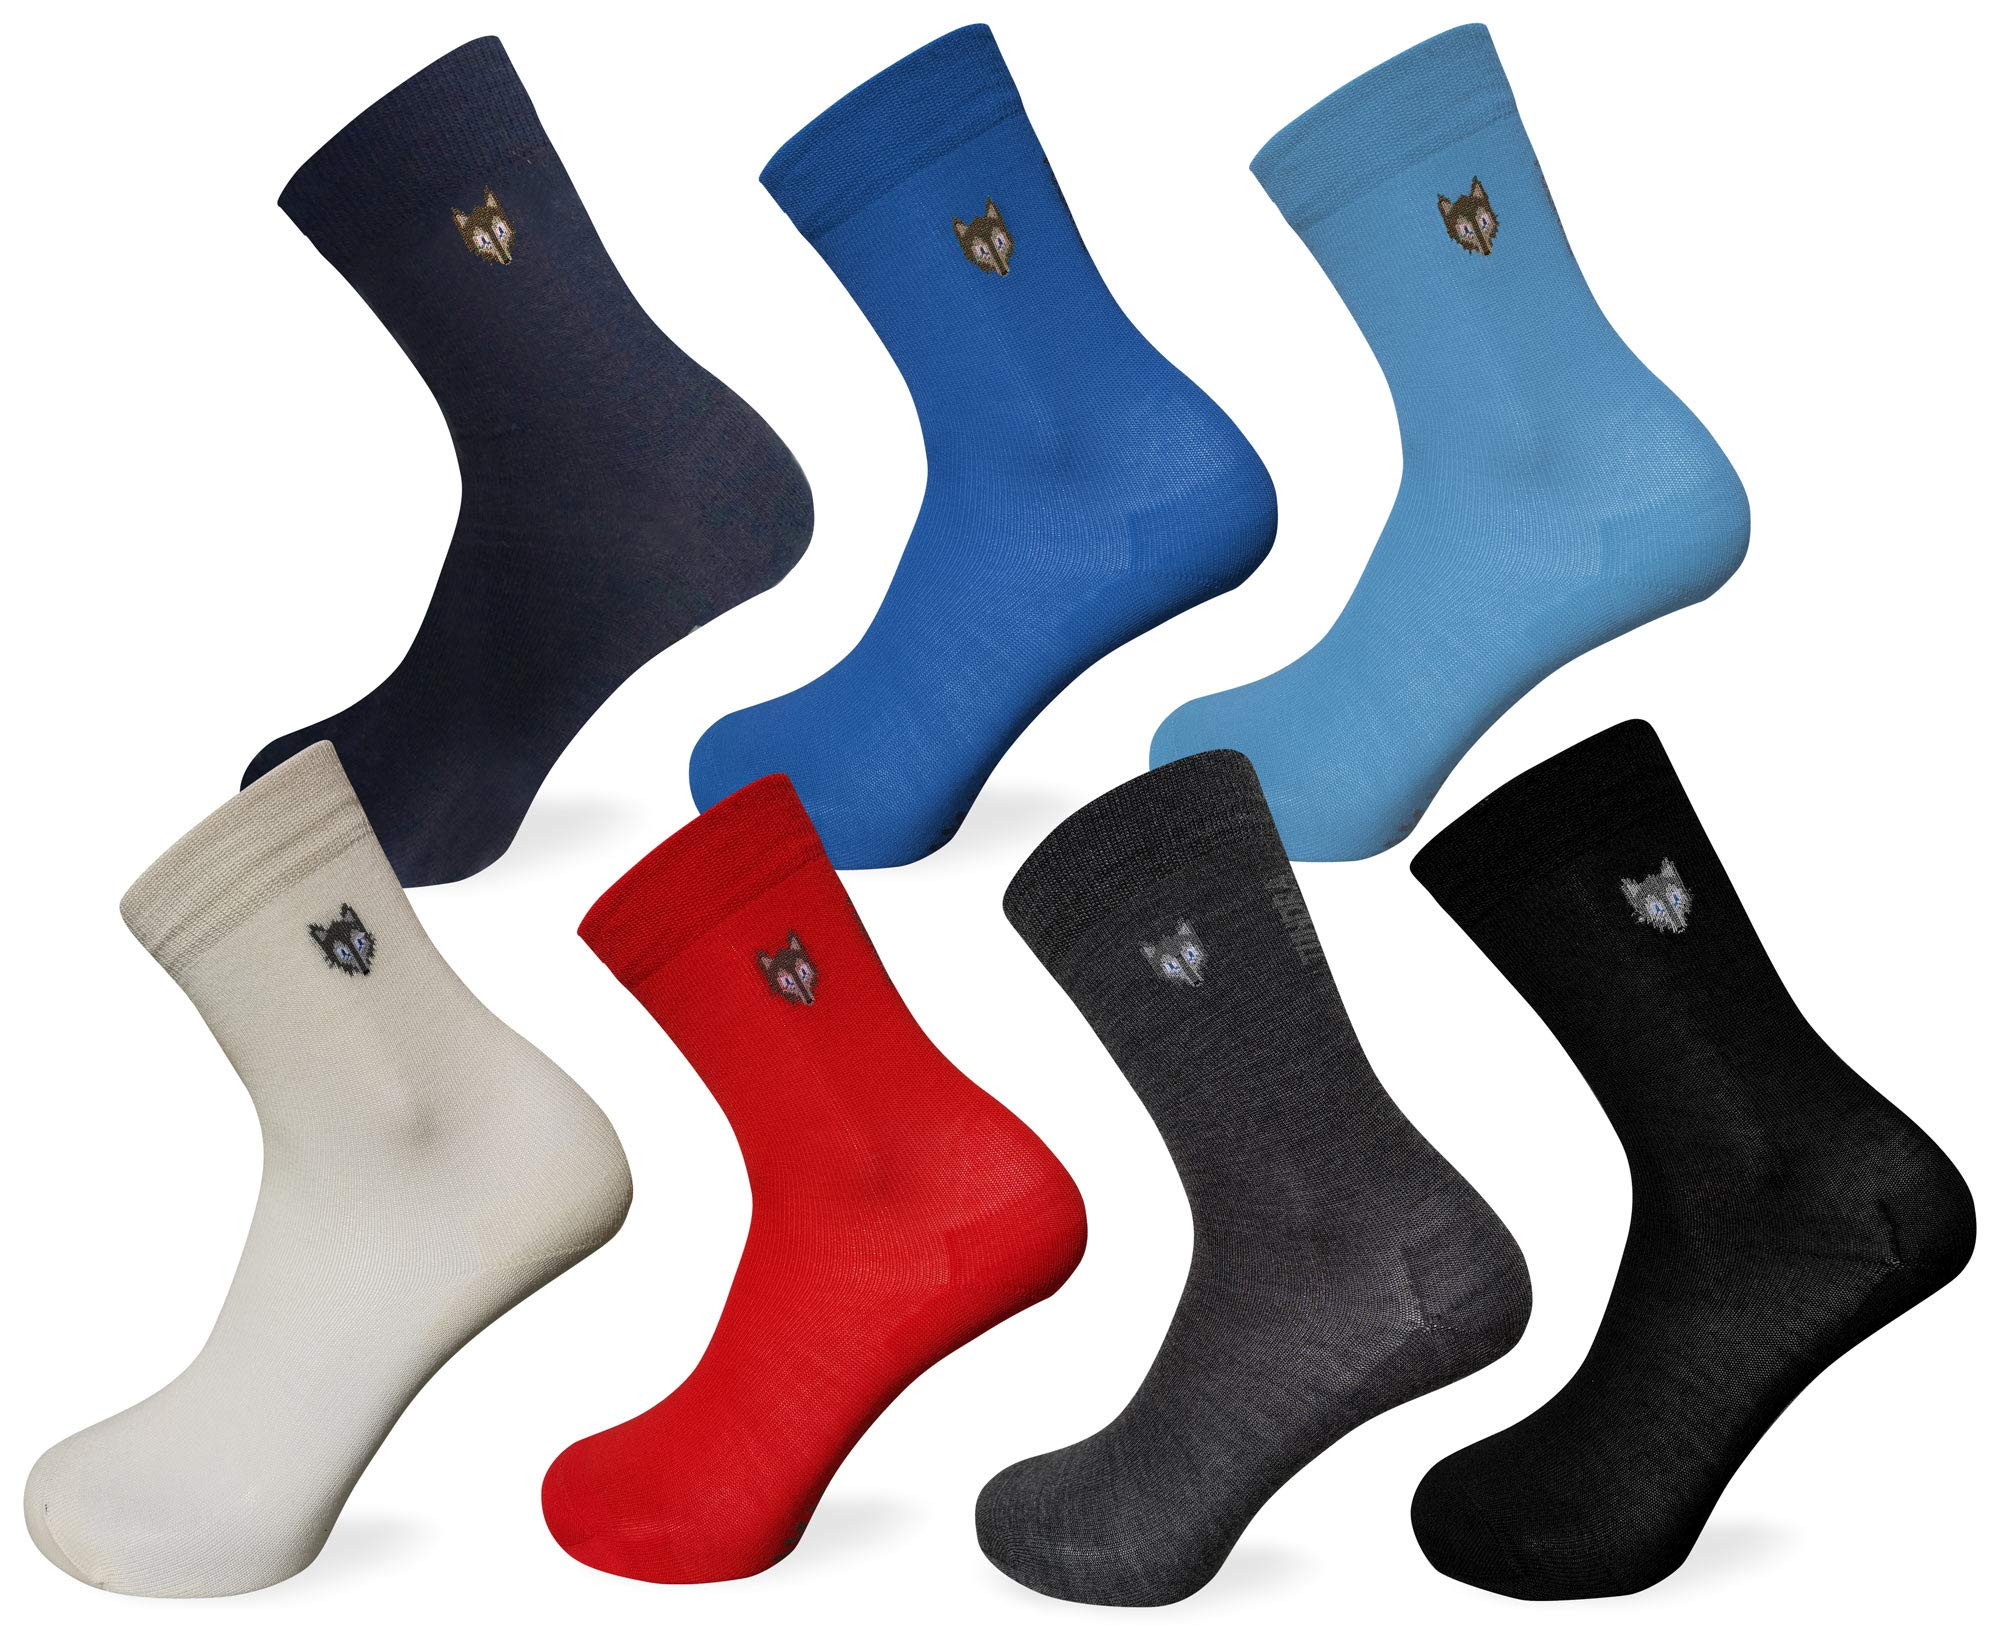 Tundra wolf 80% wool socks 3-pack - thin & extremely warm thermal socks by Team Magnus